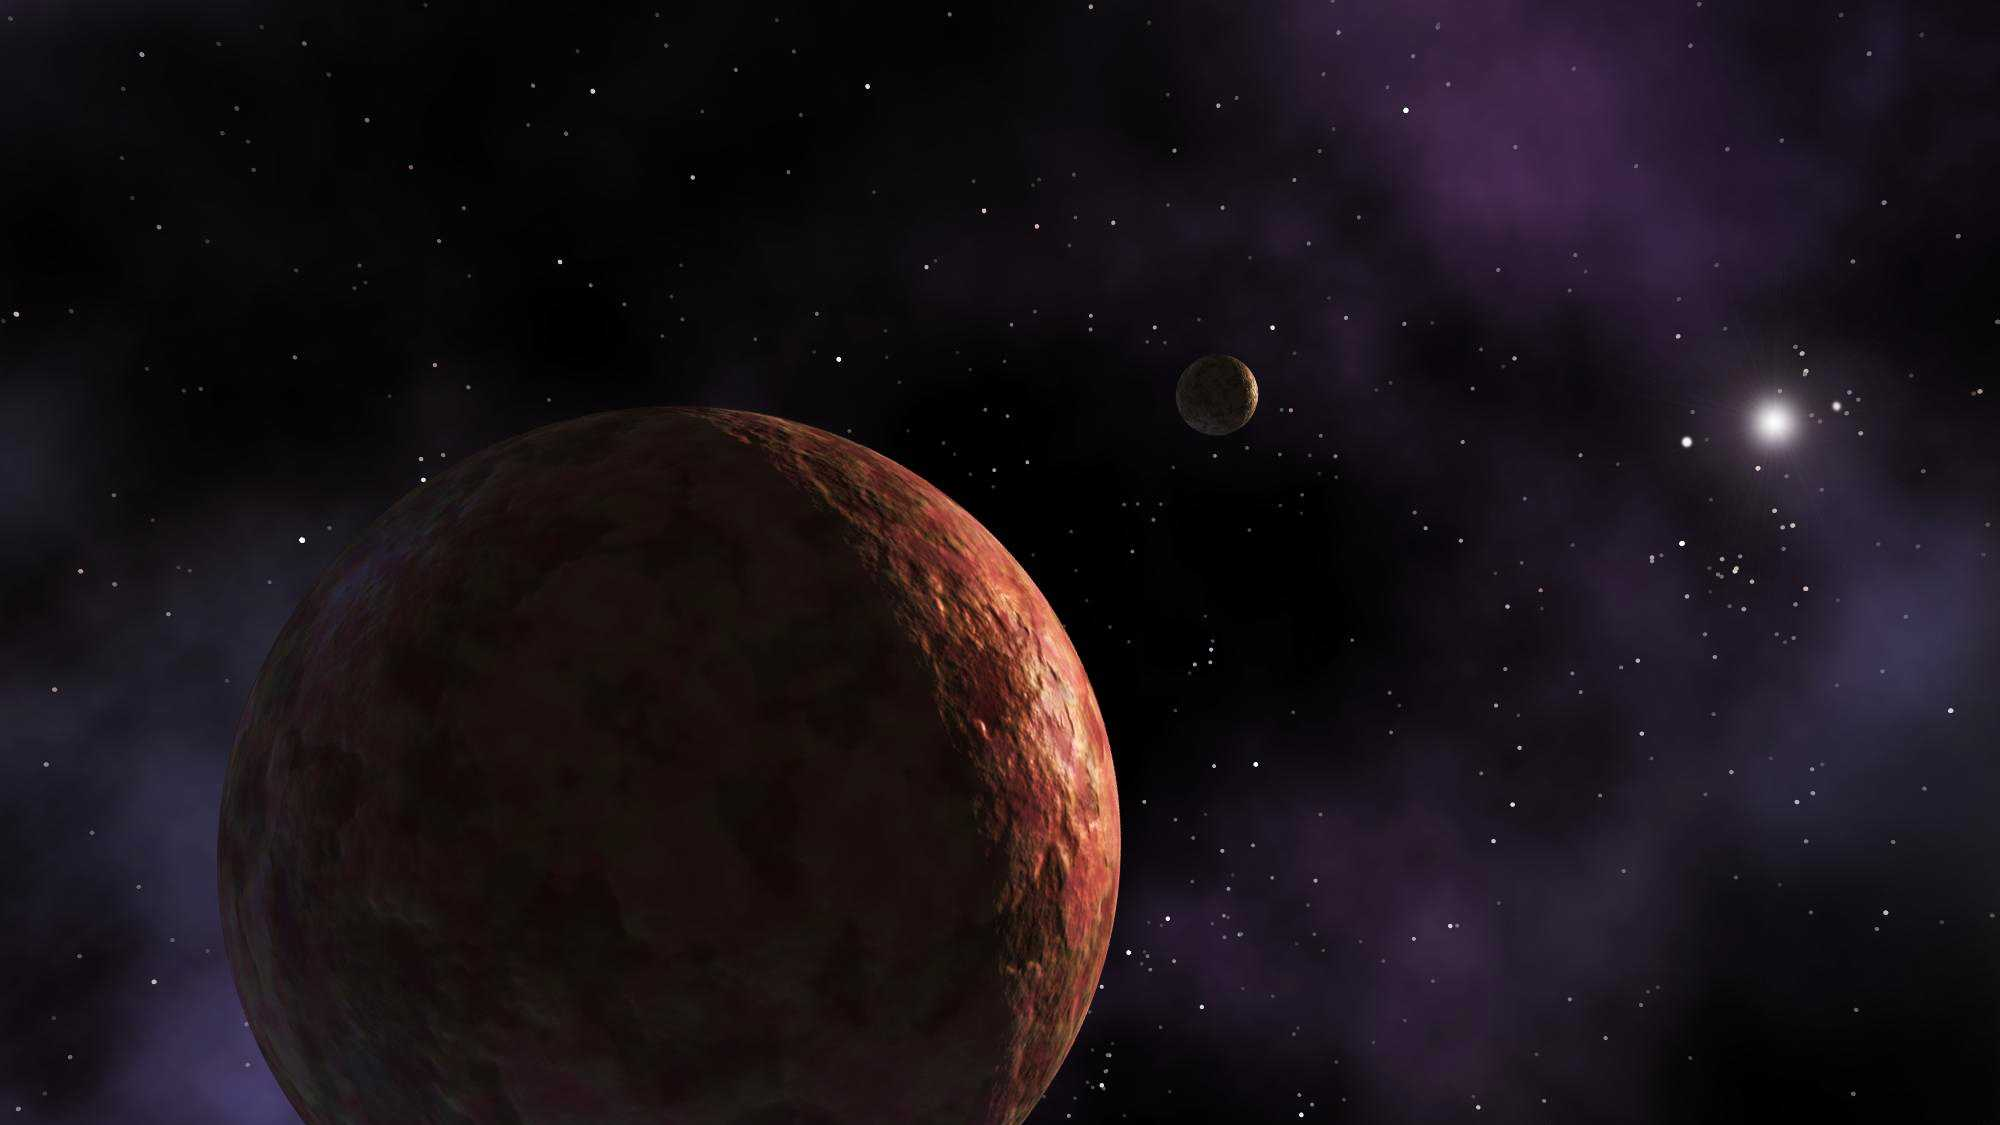 An artist's conception shows Sedna, a dwarf planet located in the same distant area of the solar system as the newly discovered dwarf planet.